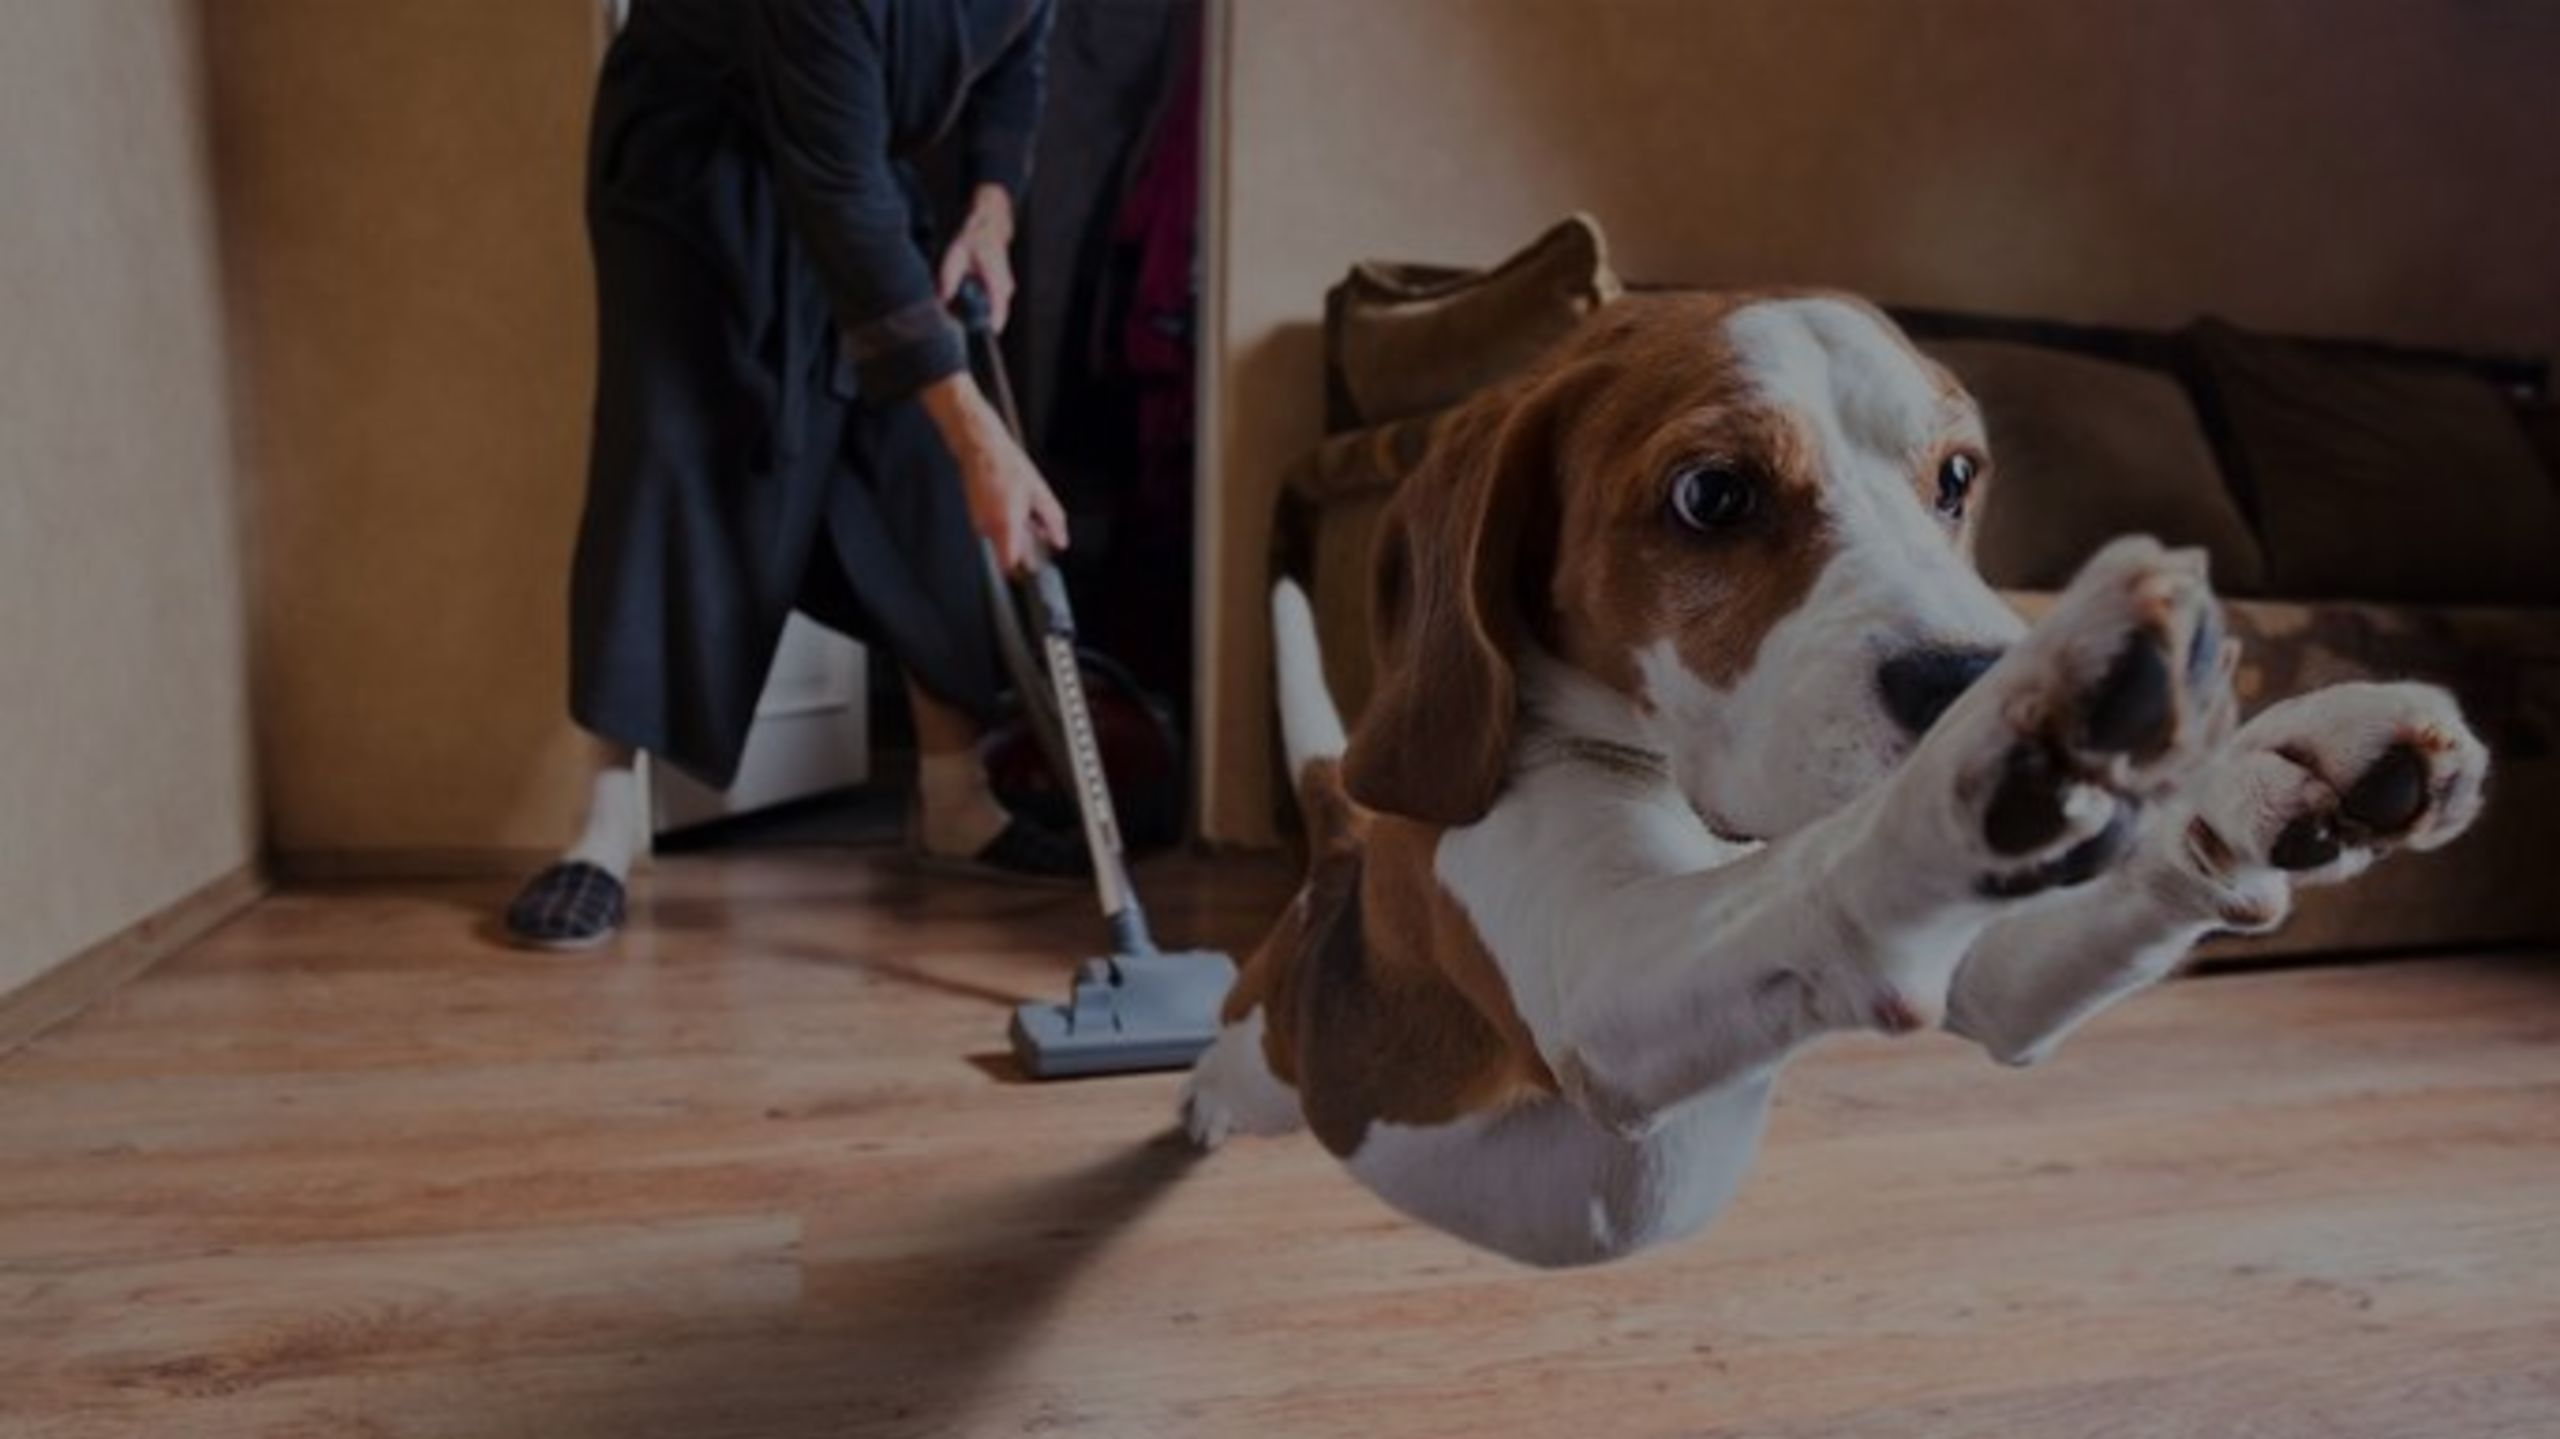 A Housecleaning Checklist for People Hosting Guests With Pet Allergies